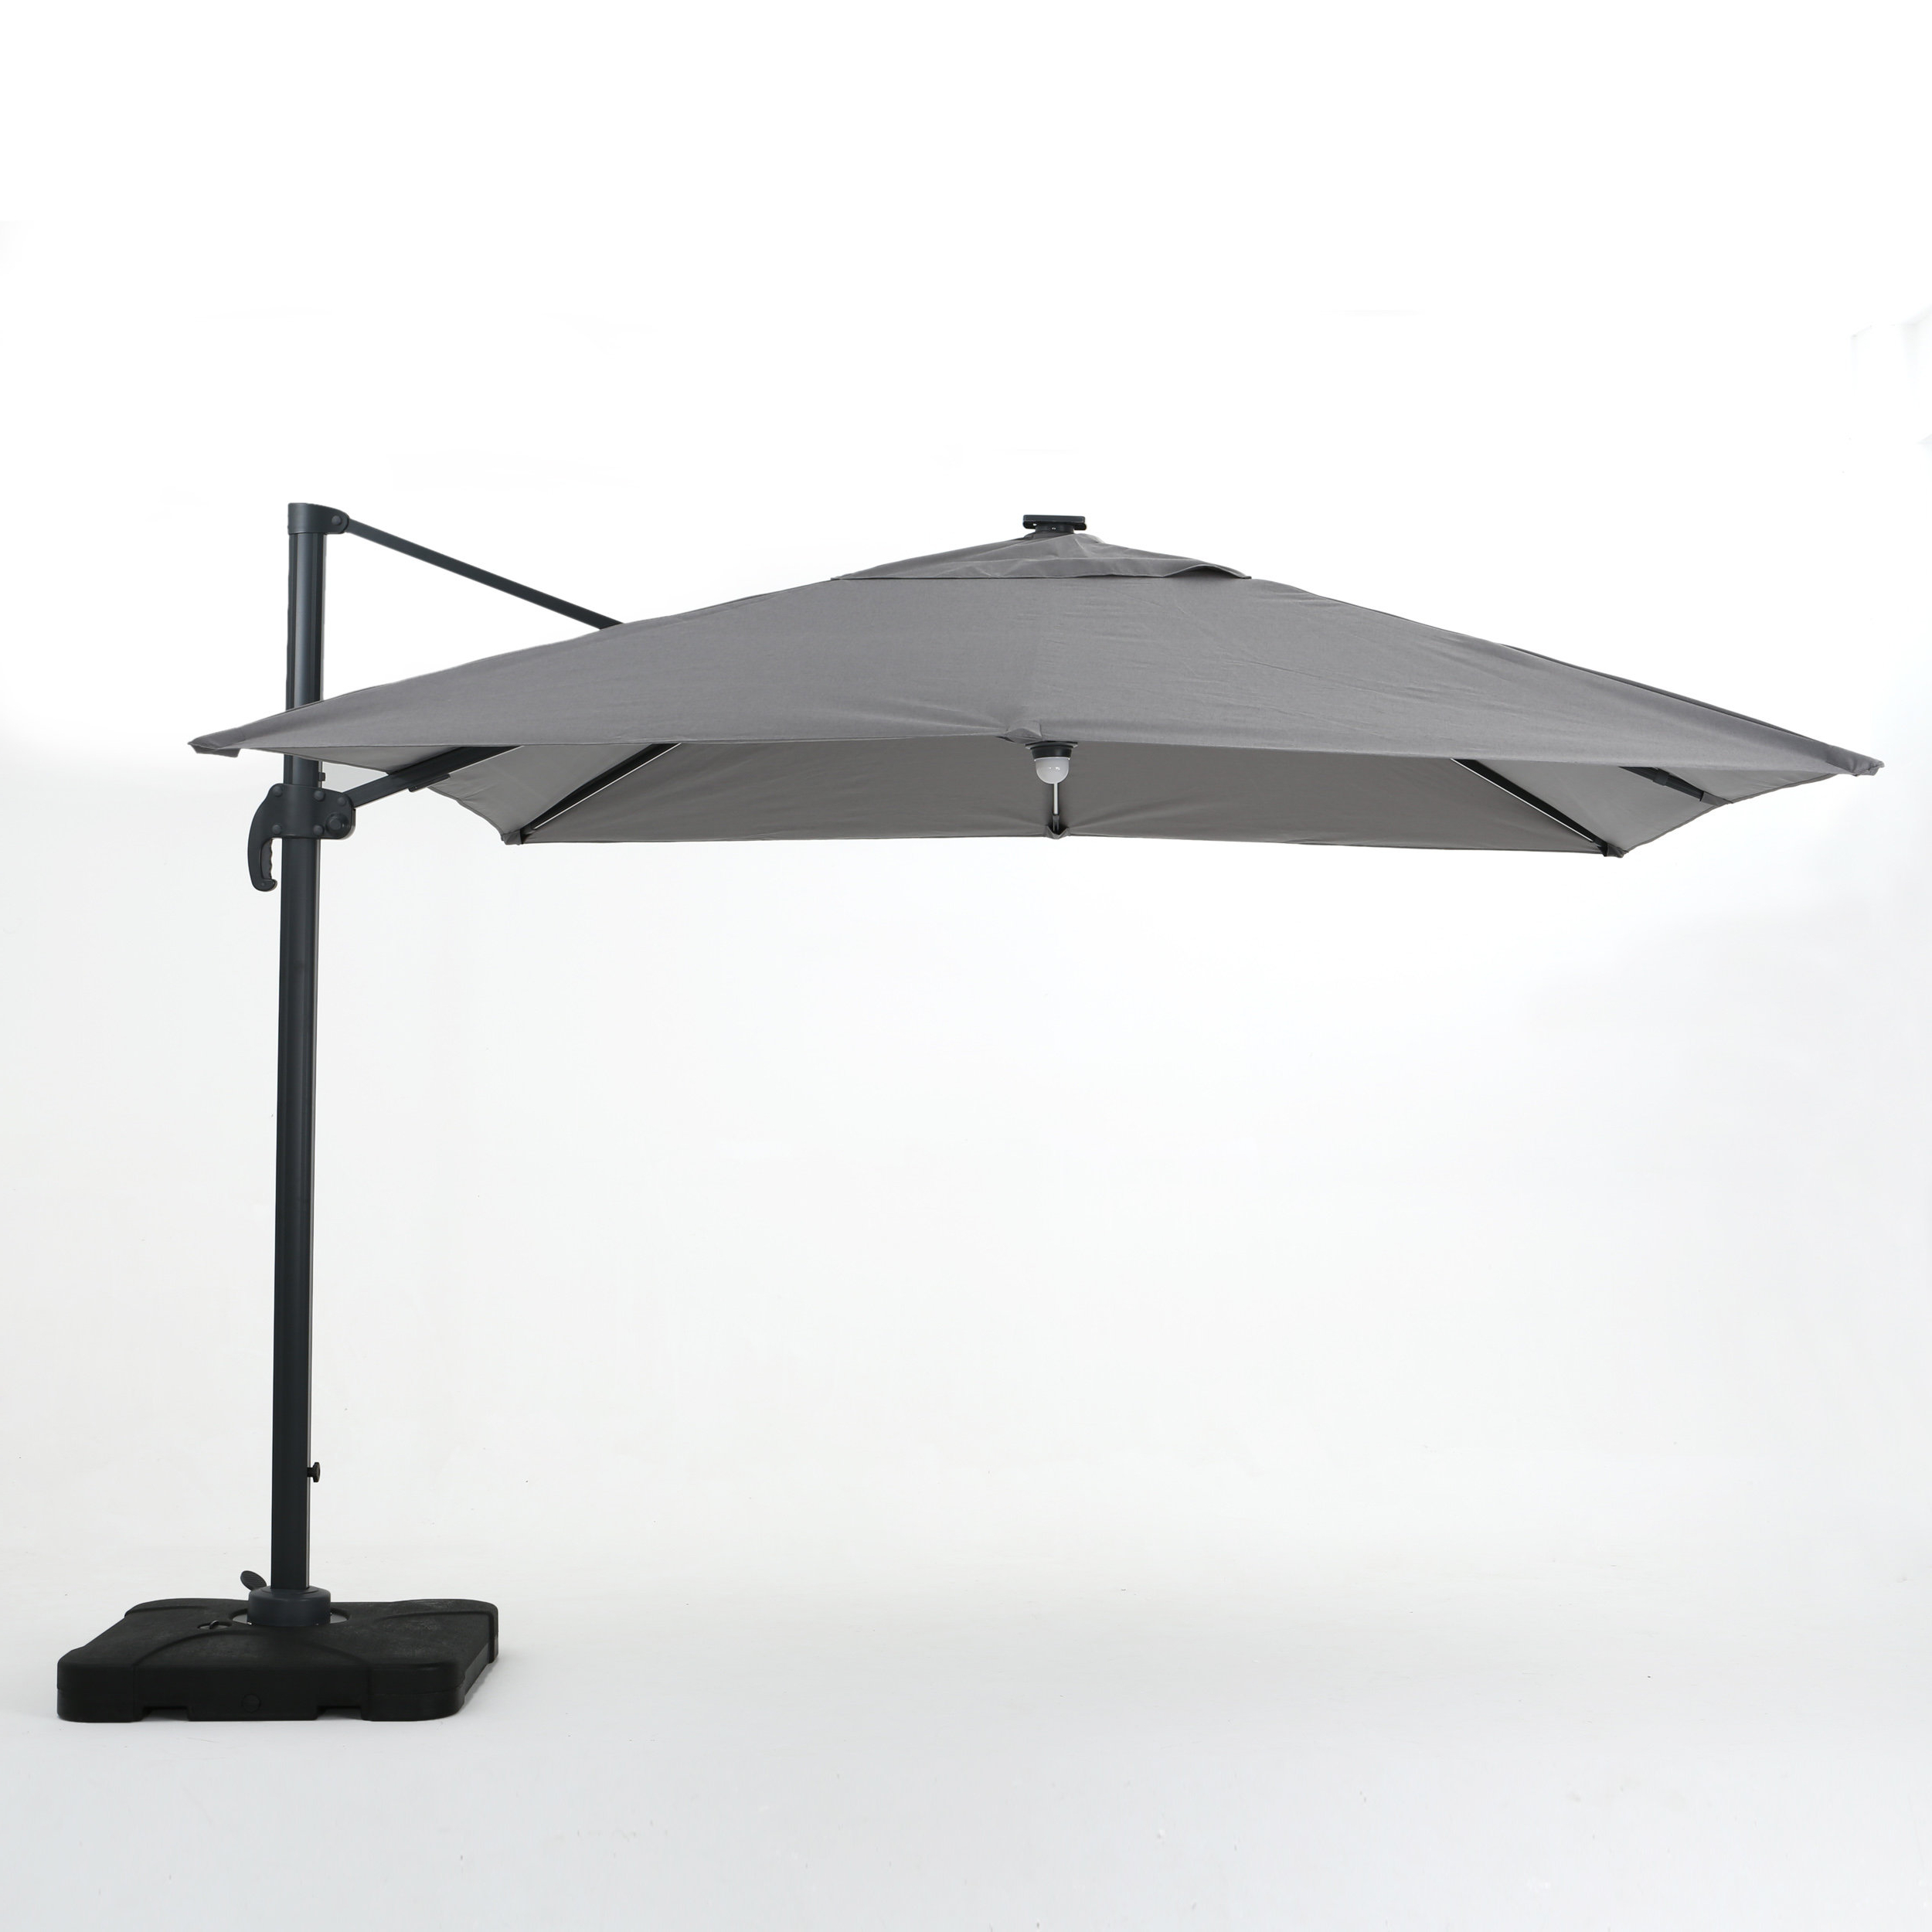 2020 Gemmenne Square Cantilever Umbrellas Intended For Jendayi Square Cantilever Umbrella (Gallery 4 of 20)